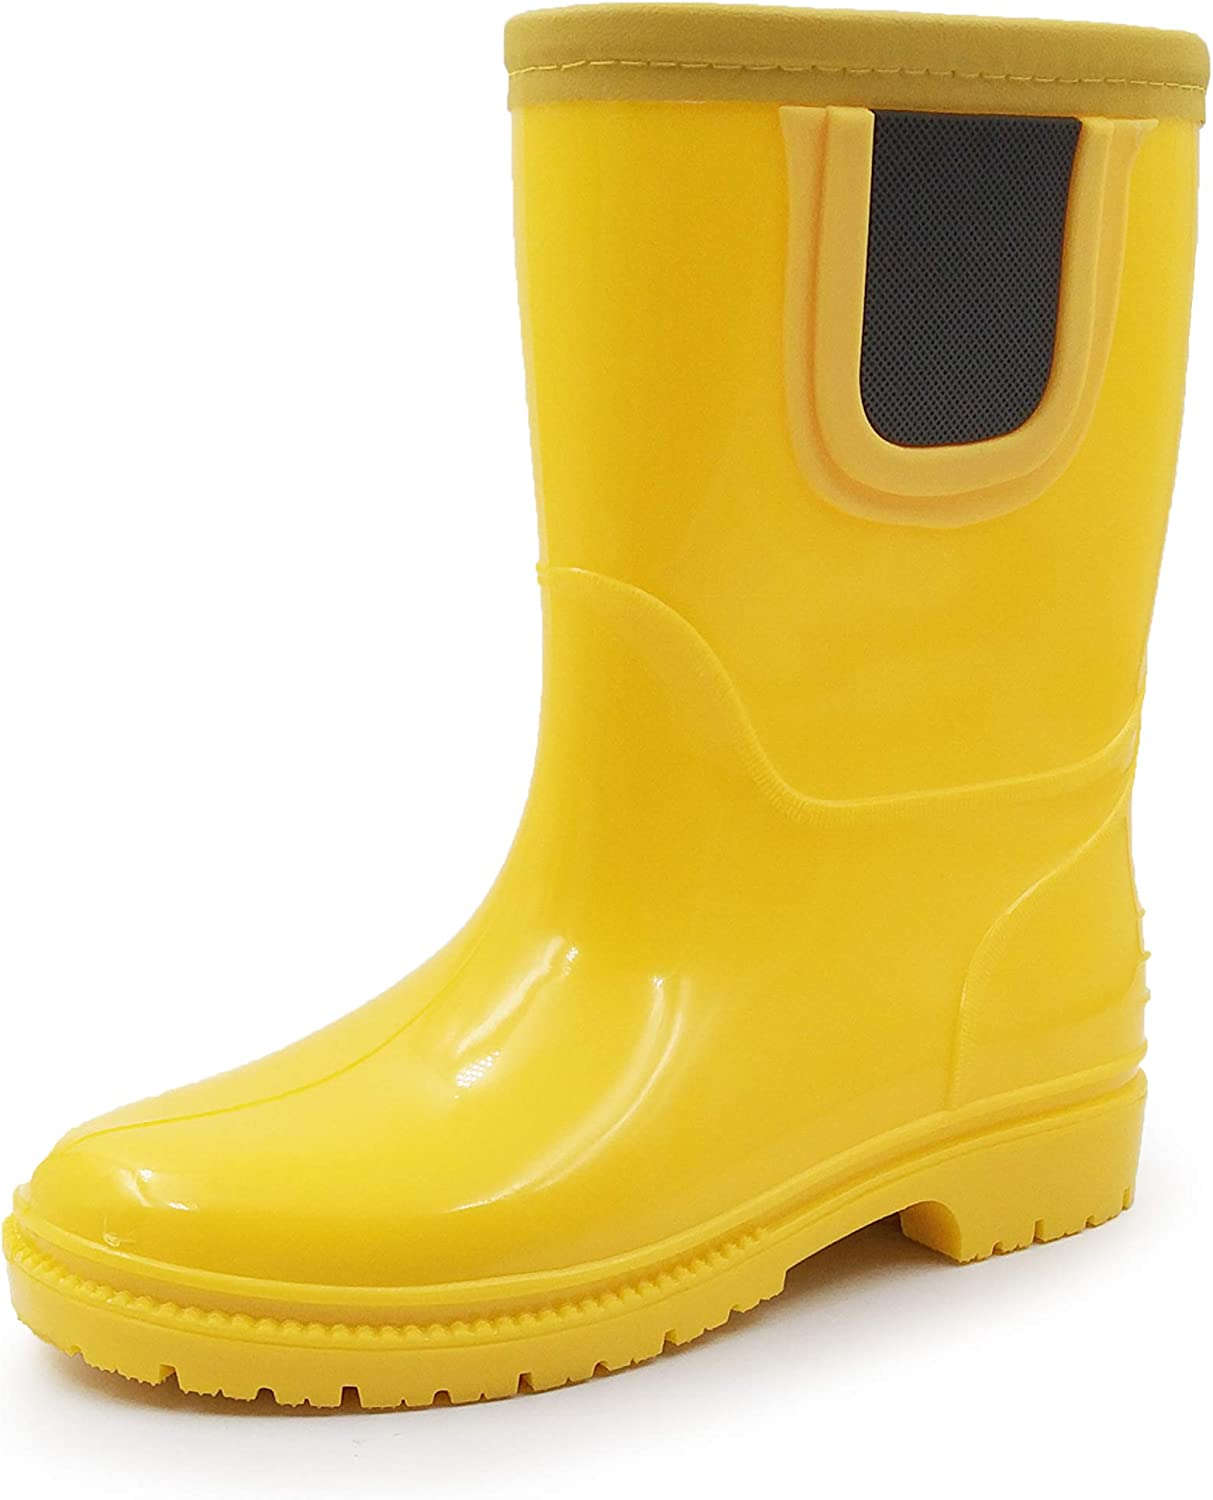 | Amoji Baby Kids Easy On Rain Shoes Boots for Toddler Little Kid | Rain Boots